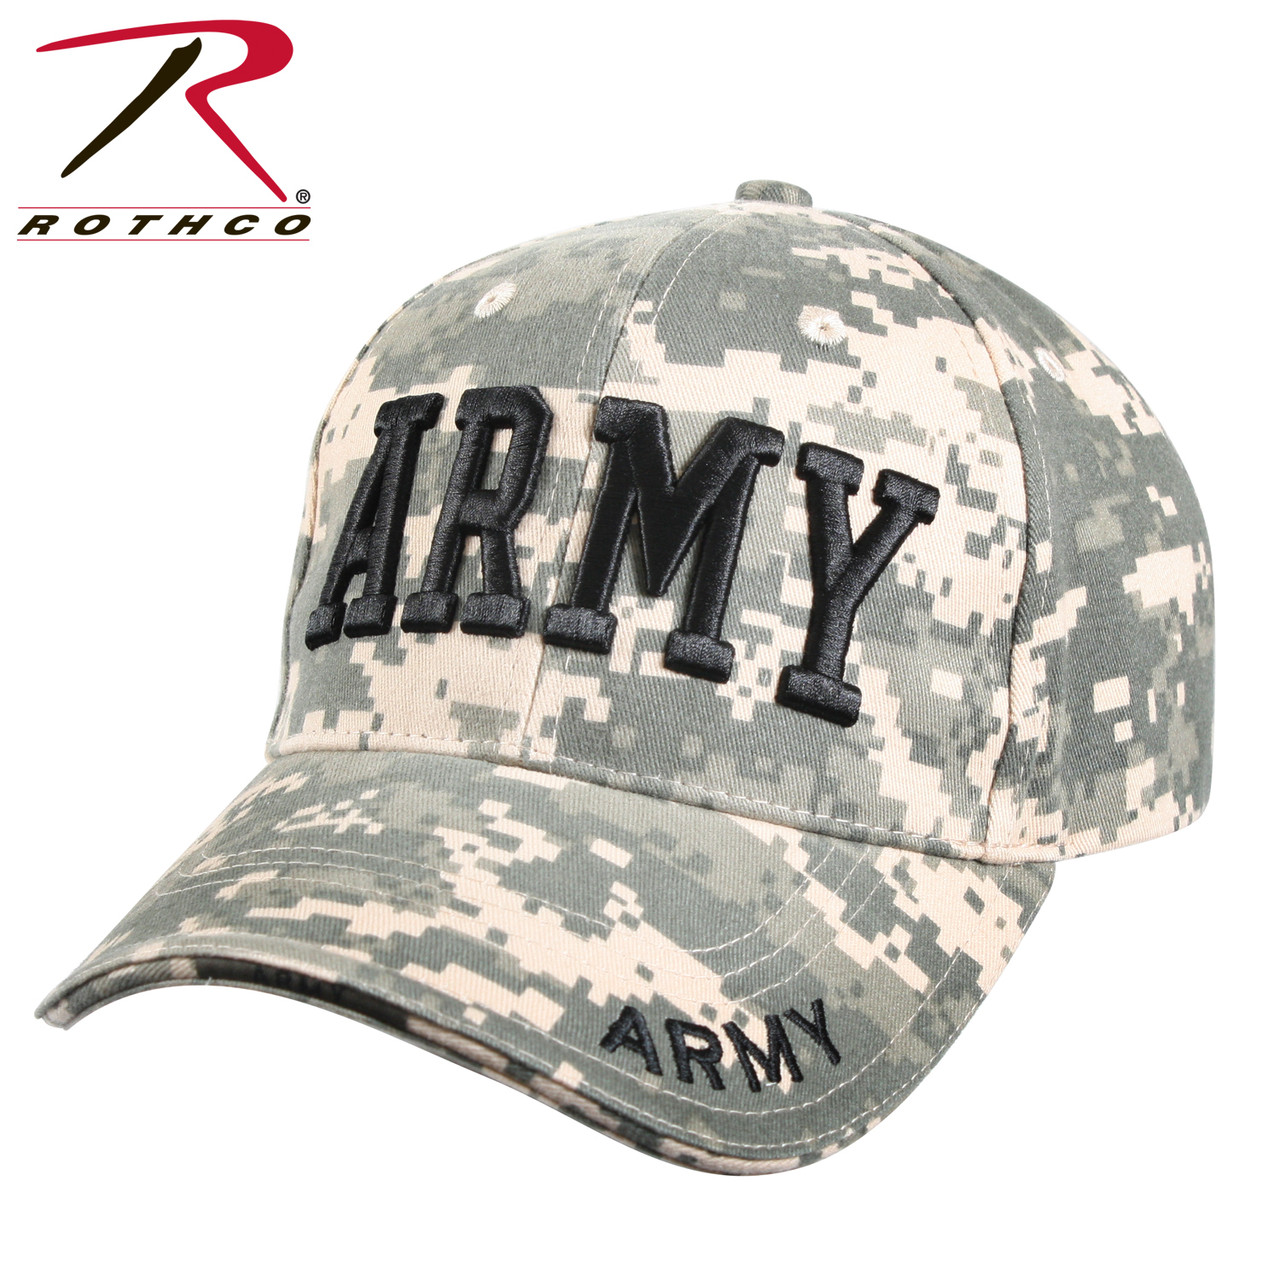 cf8191b4f41d5 Rothco Deluxe Army Cap Embroidered Insignia Low Profile (Item  9488) -ACU  Digital Camo - USMILITARYHATS.COM